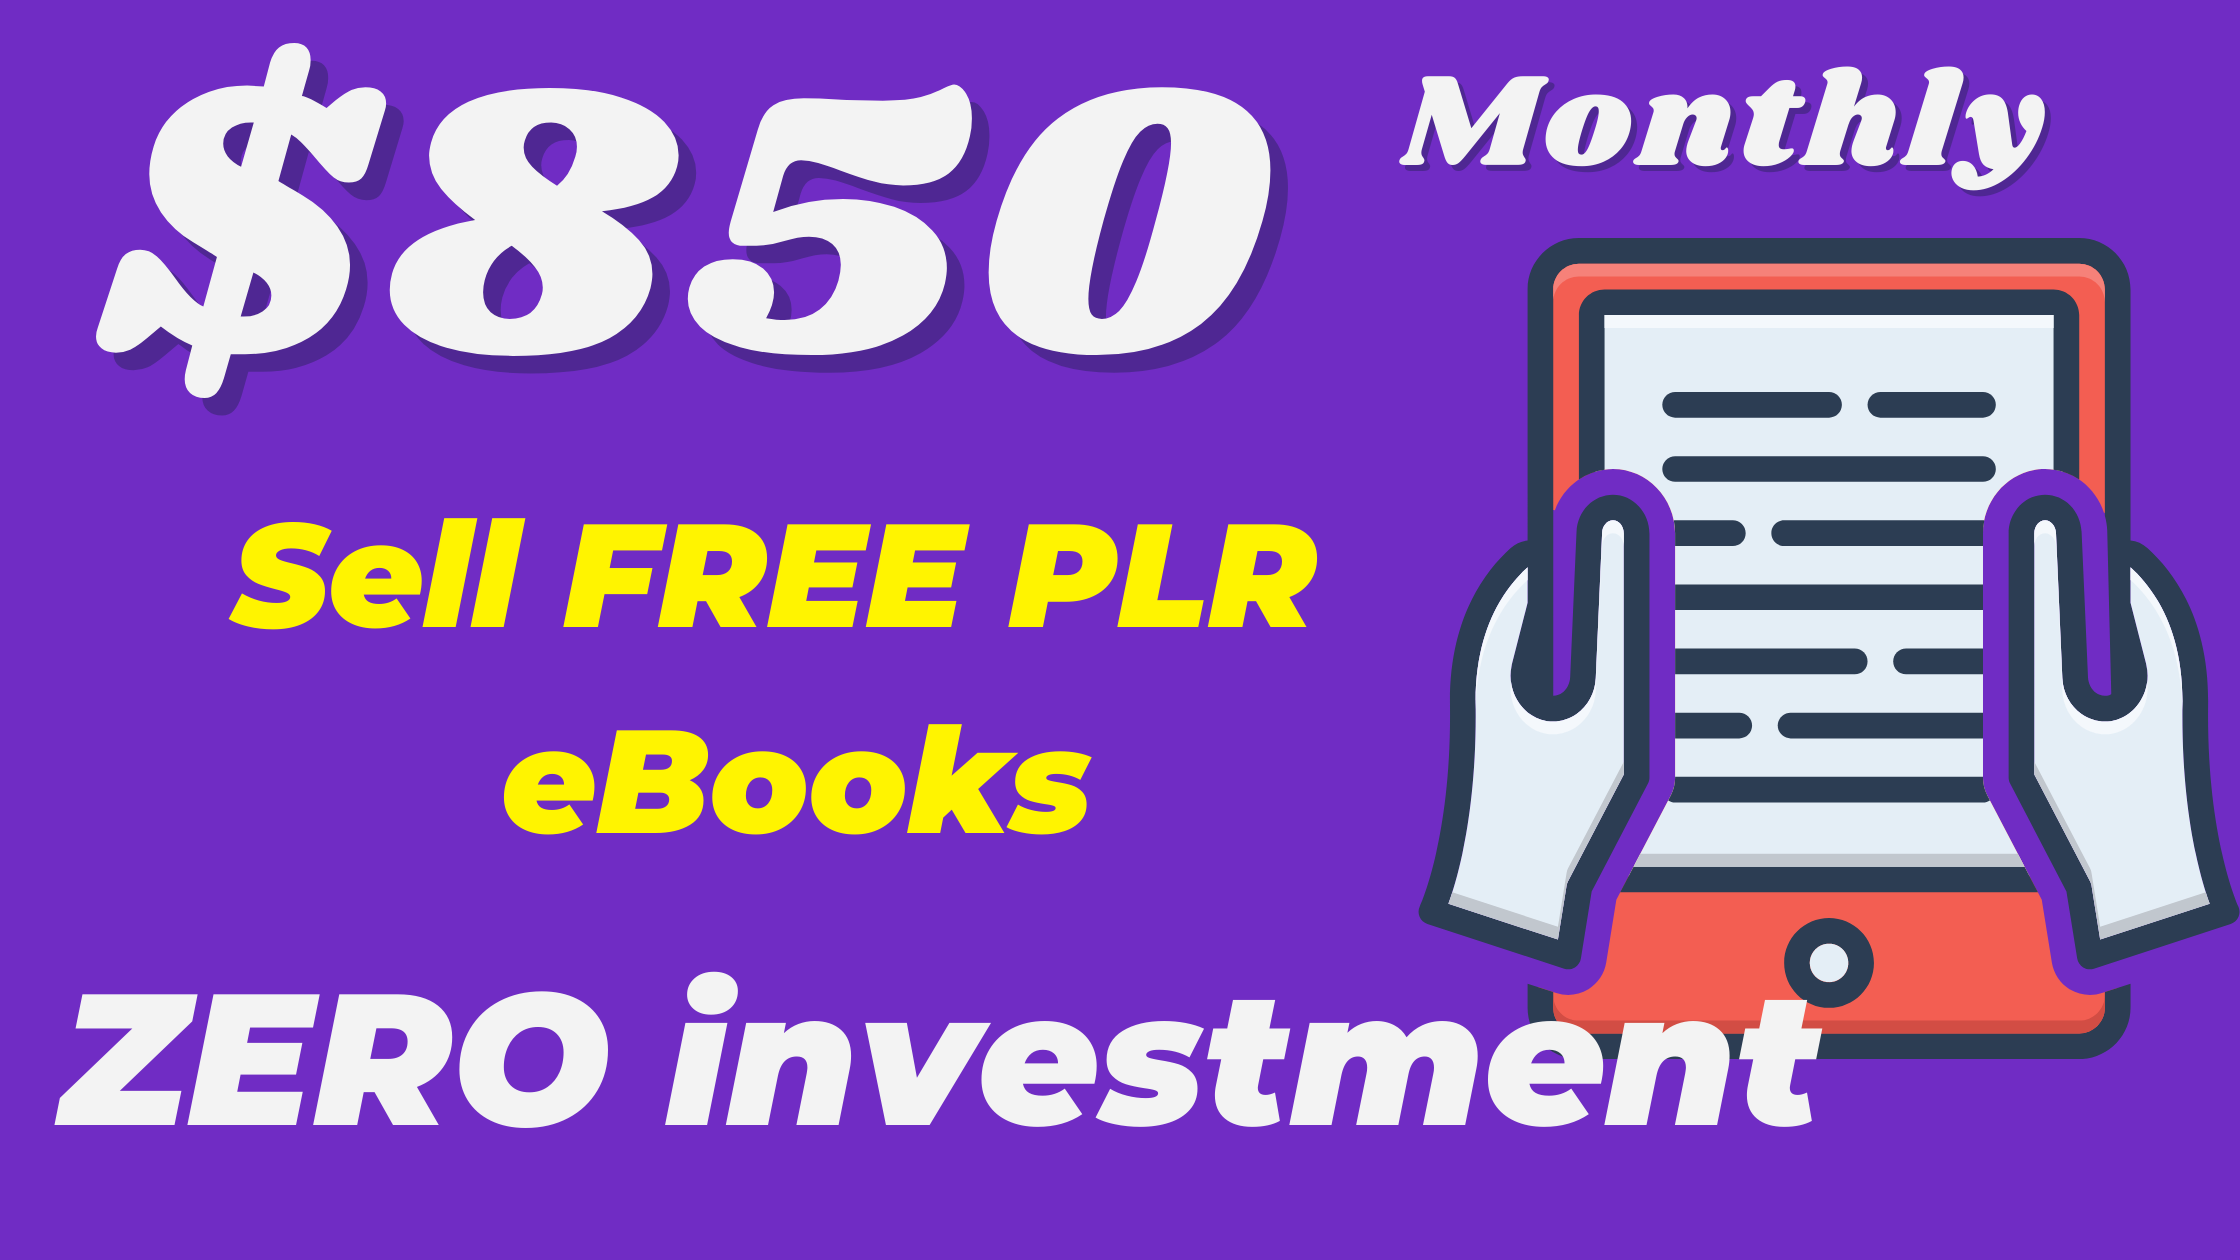 How To Sell PLR eBooks Online To Make Money $850/Month.